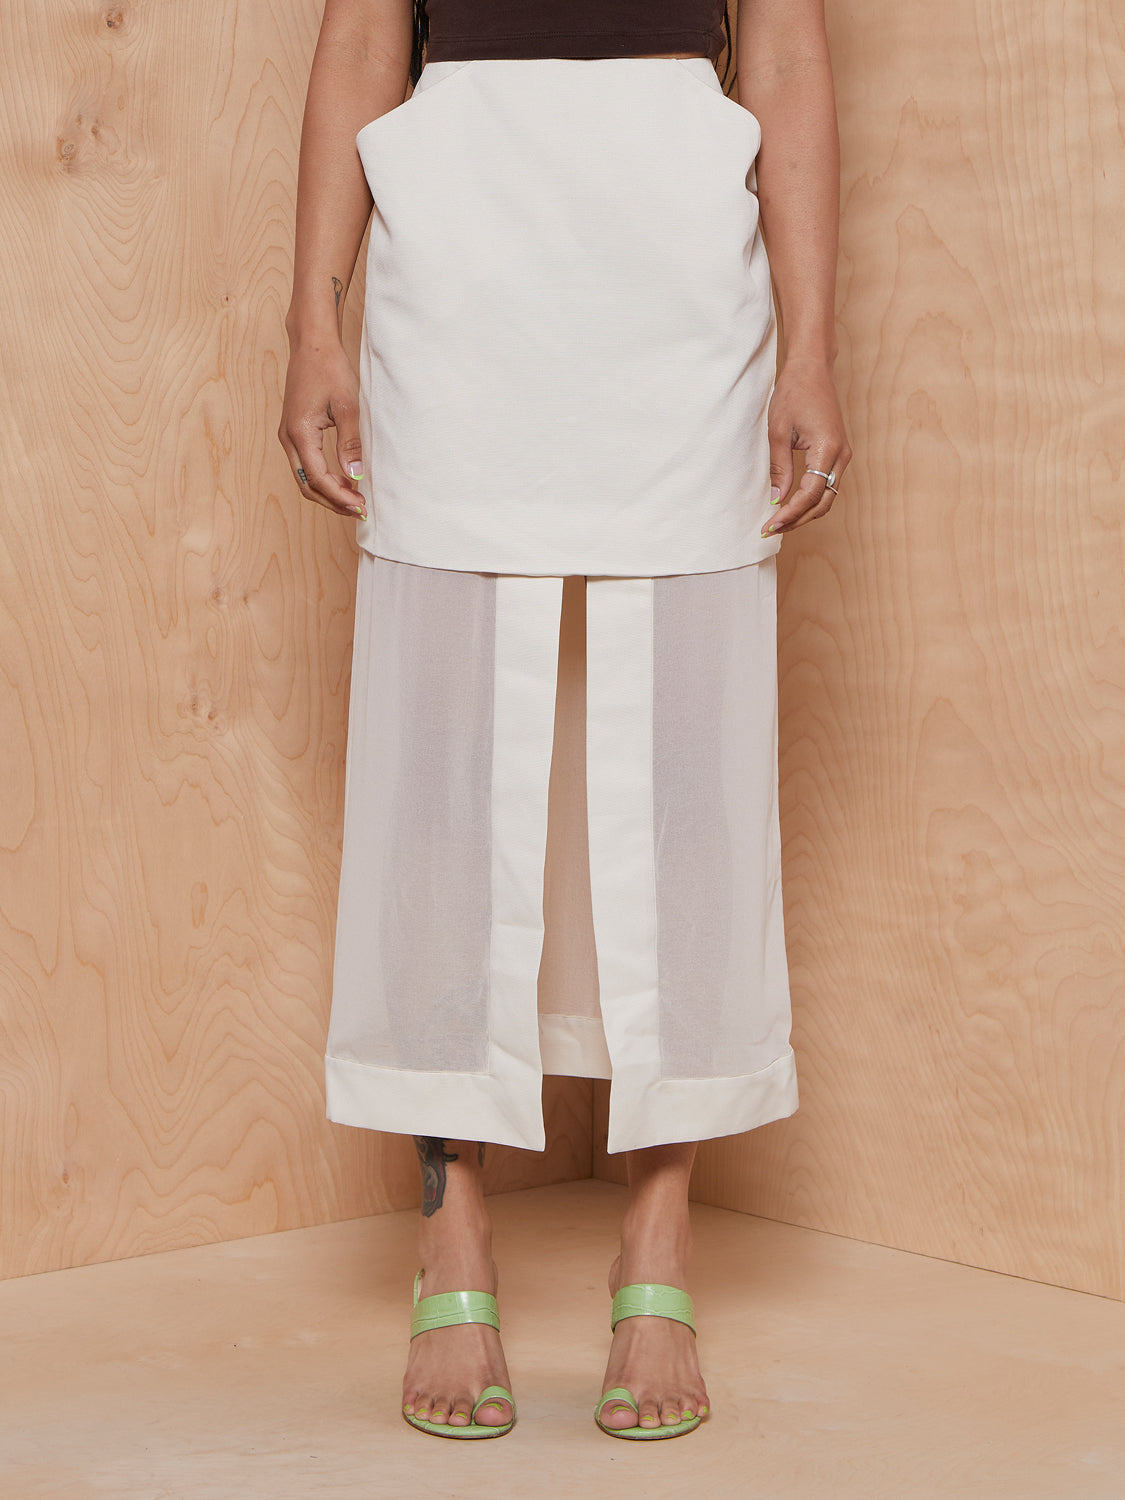 CMEO/Collective Beige Skirt